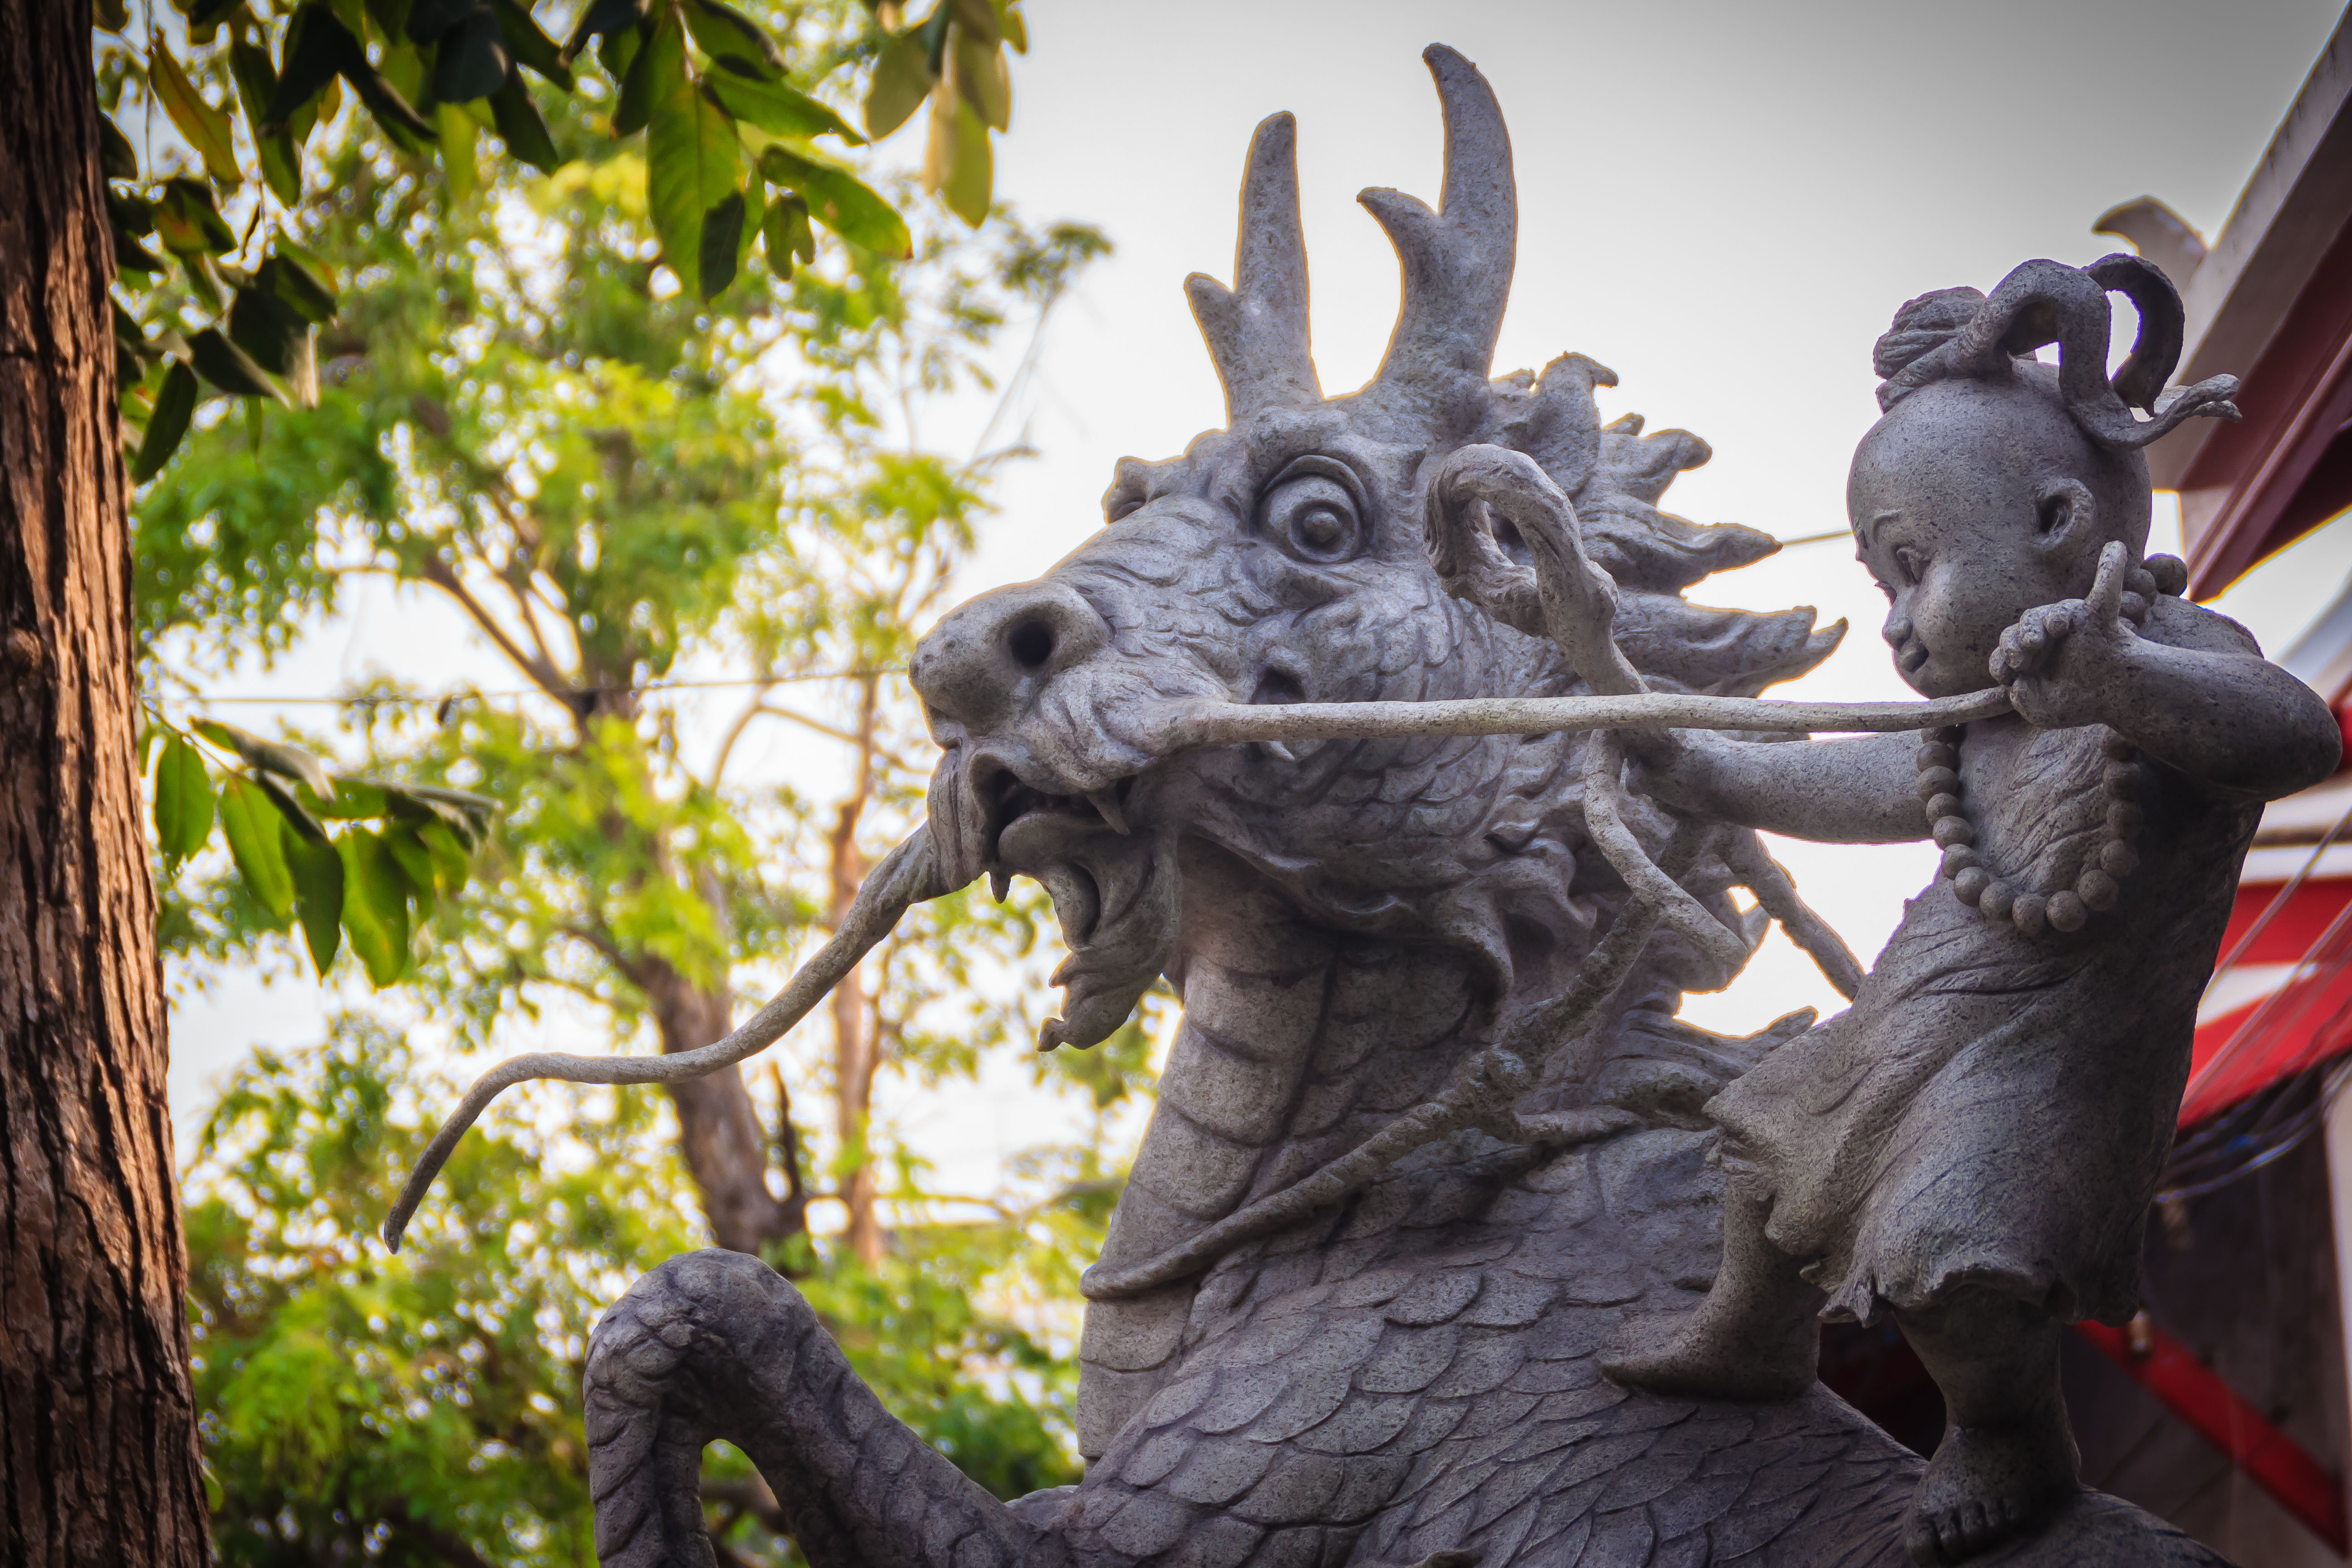 Statues from Sunthorn Phu's epic in Rayong, Thailand